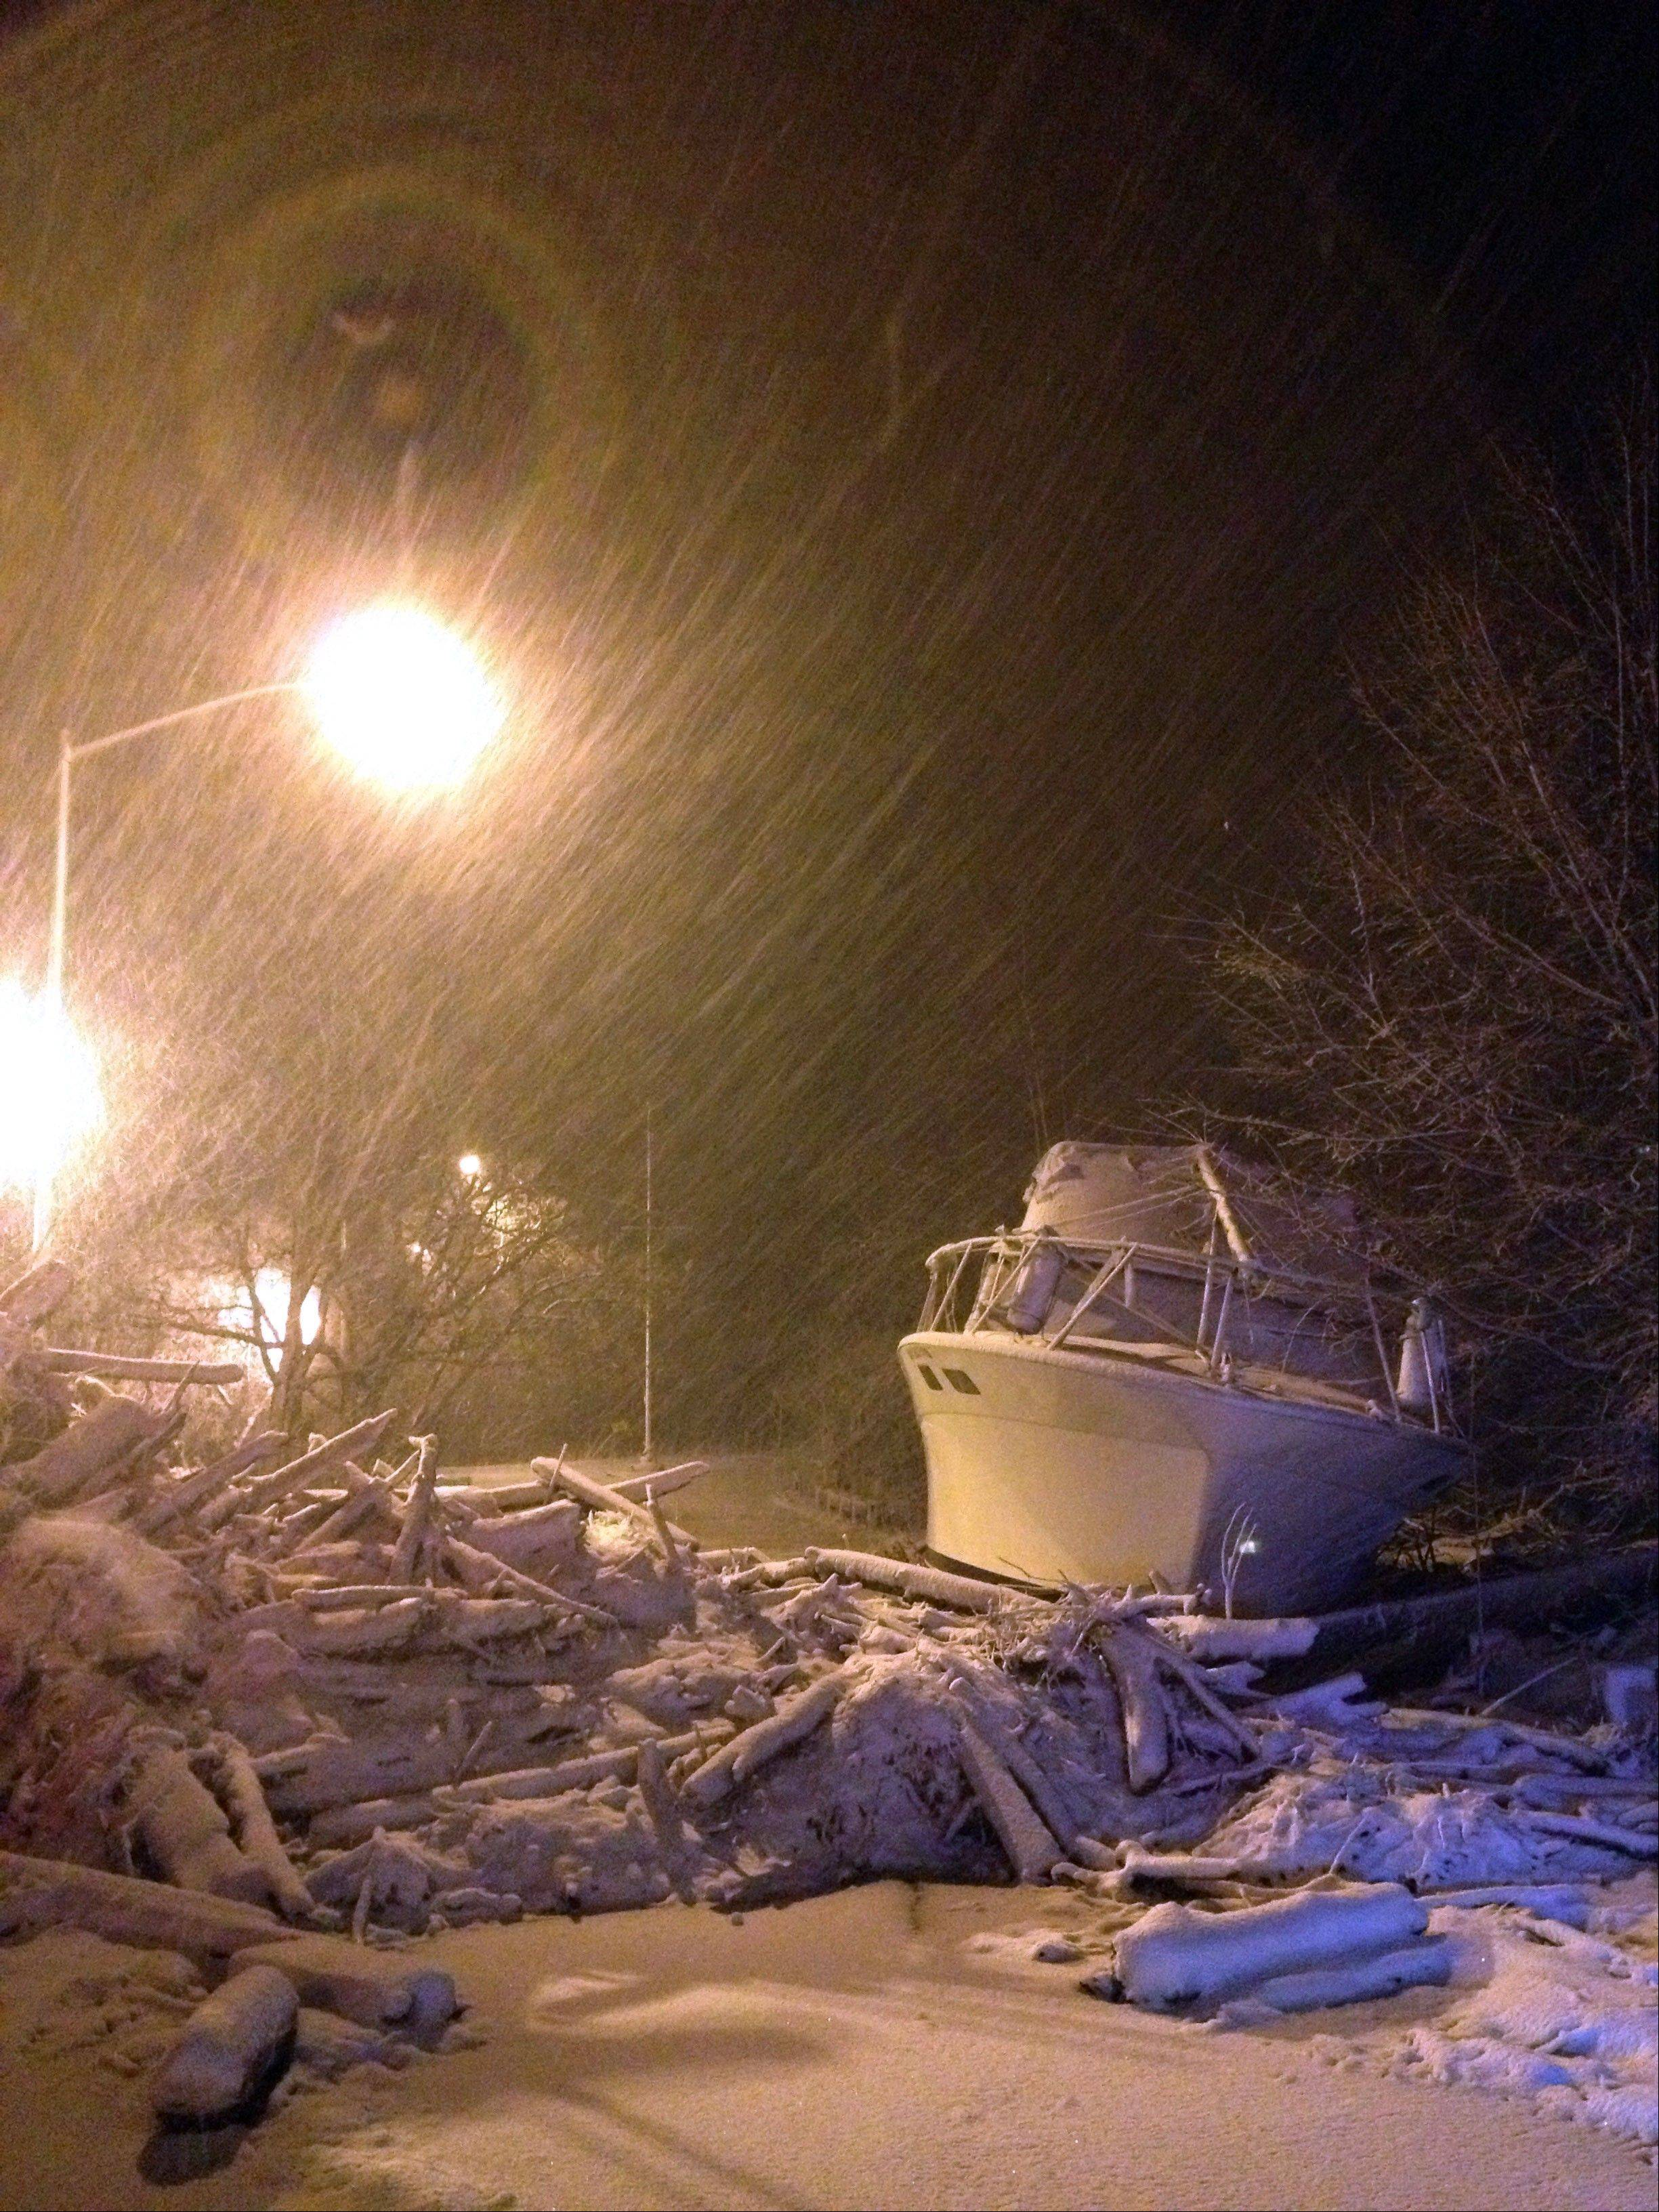 In this photo provided by Tom DeVito, a boat that washed ashore during Superstorm Sandy sits covered in snow on Hylan Blvd. in the Staten Island borough of New York as a nor'easter hits the city, Wednesday, Nov. 7, 2012. A nor'easter blustered into New York and New Jersey on Wednesday with rain and wet snow, plunging homes right back into darkness, stopping commuter trains again and inflicting another round of misery on thousands of people still reeling from Superstorm Sandy's blow more than a week ago.